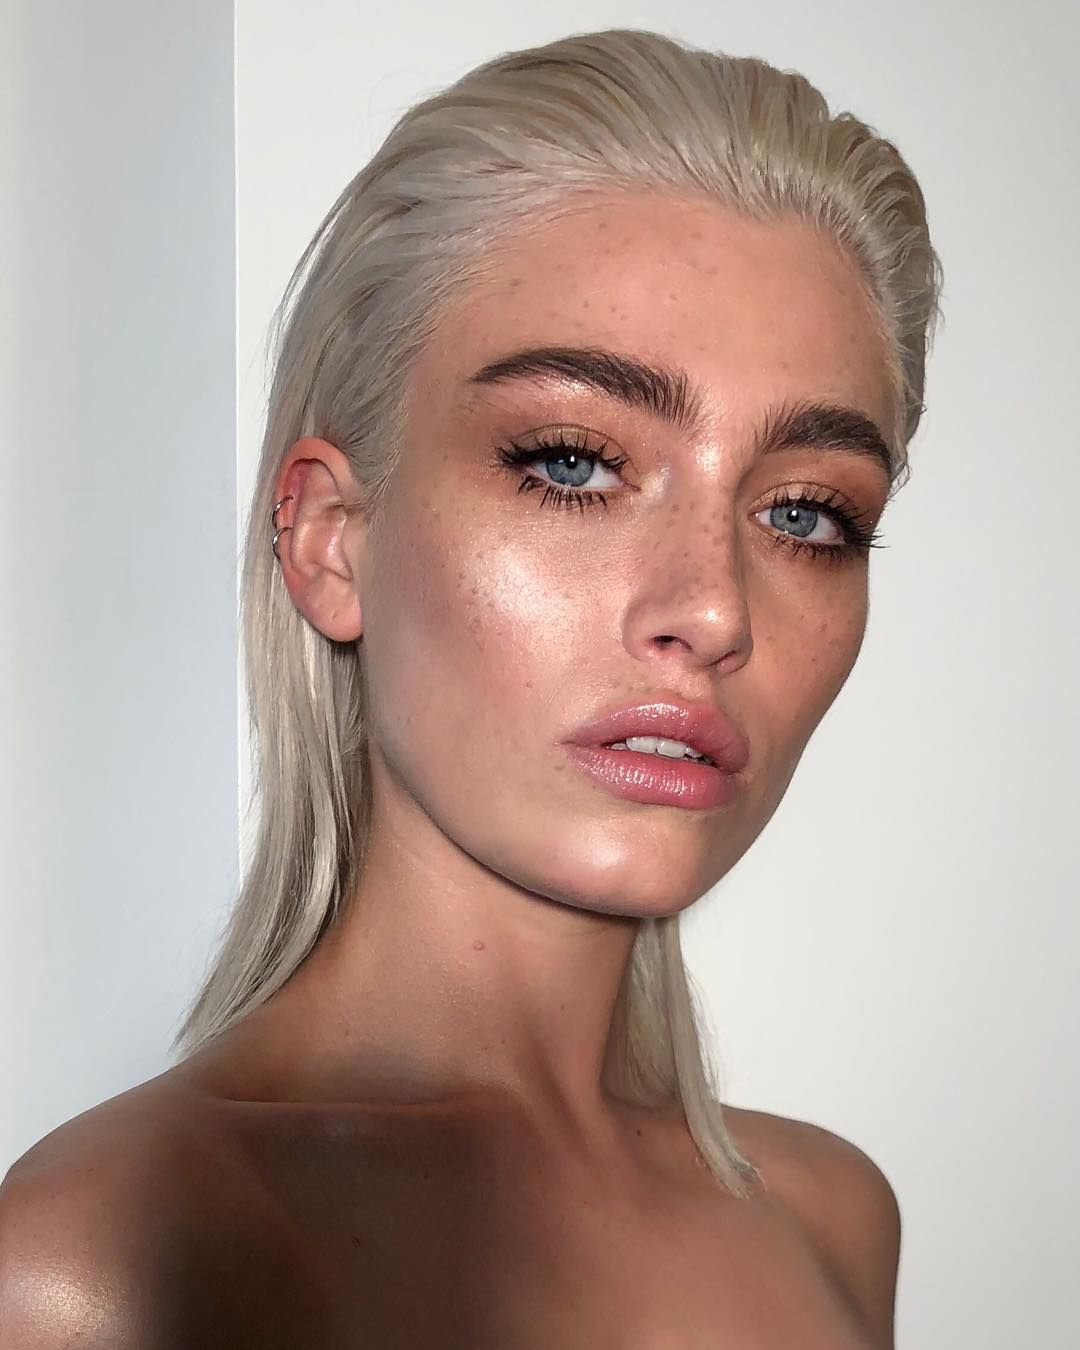 9 557 Likes 92 Comments Nikki Makeup Nikki Makeup On Instagram Glowing Into The Week Ahead Natural Makeup Makeup Looks Beauty Hacks That Actually Work